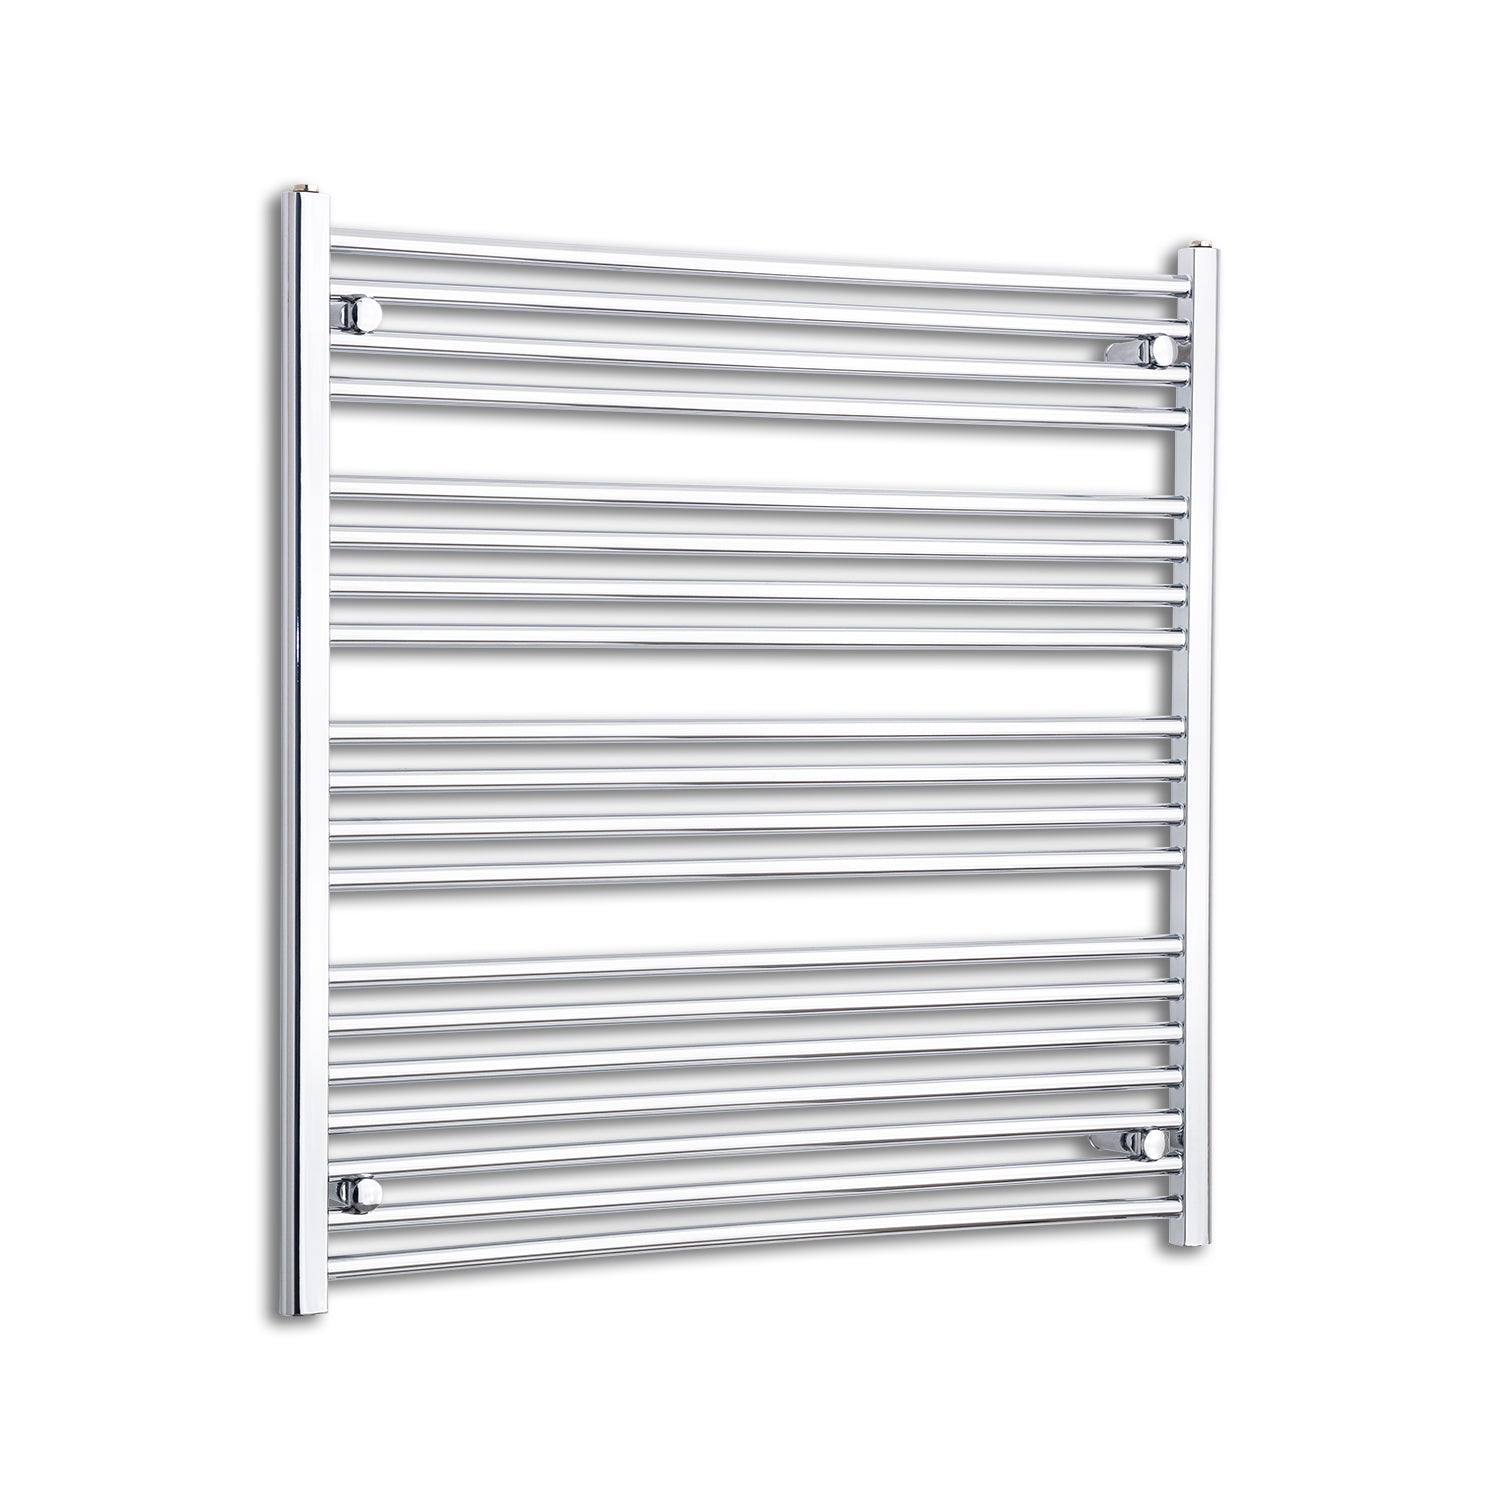 950mm Wide 1000mm High Flat Chrome Heated Towel Rail Radiator HTR,Towel Rail Only